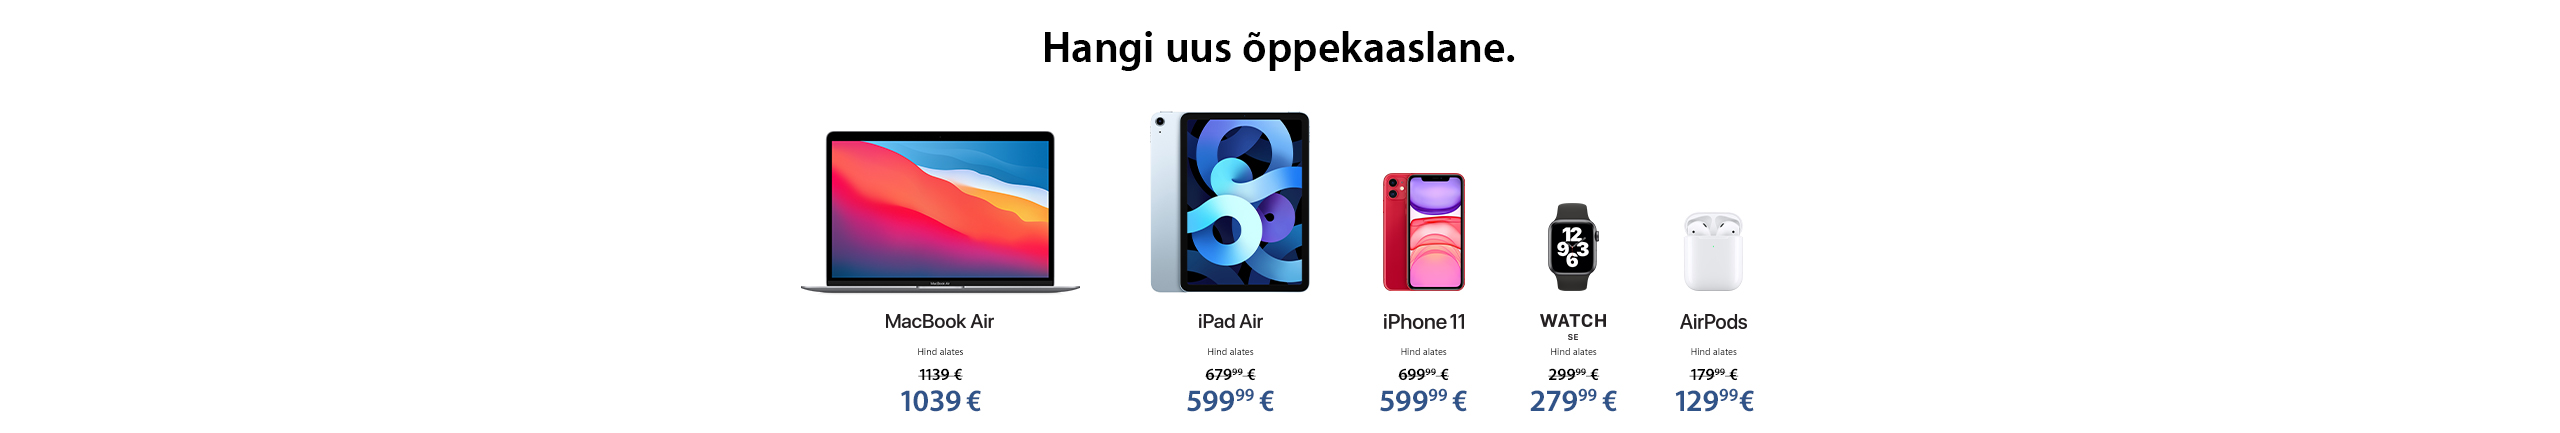 FPS Apple Back to school offers